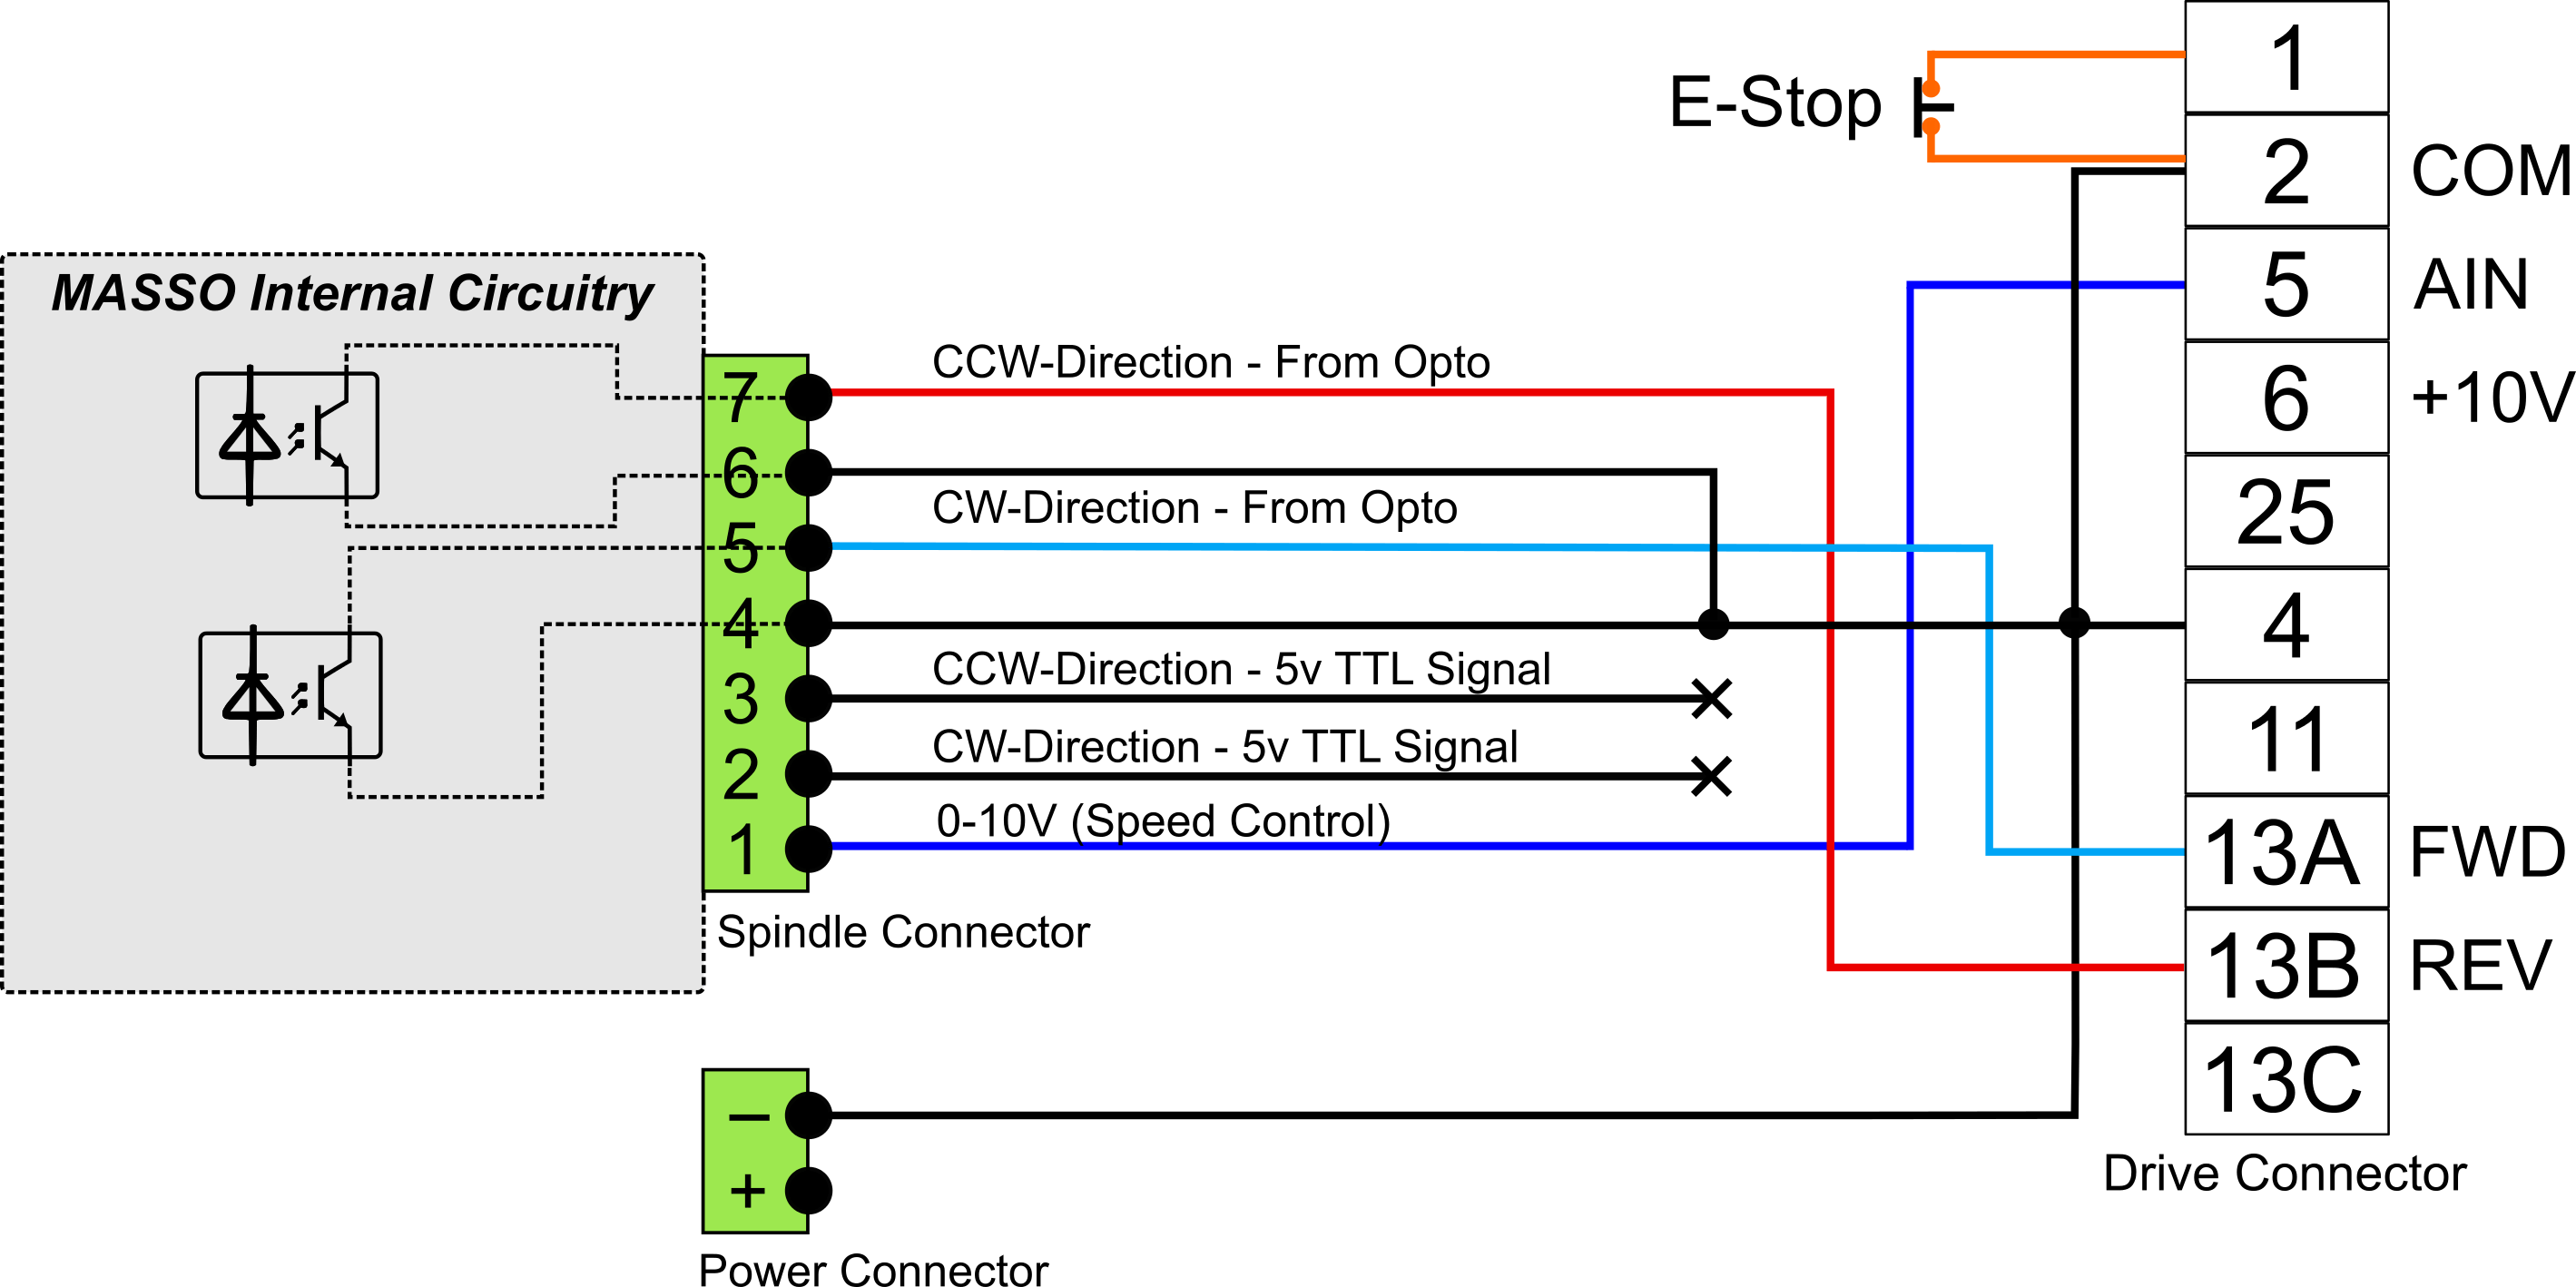 hengstler encoder wiring diagram whole house transfer switch lenze diagrams circuit maker